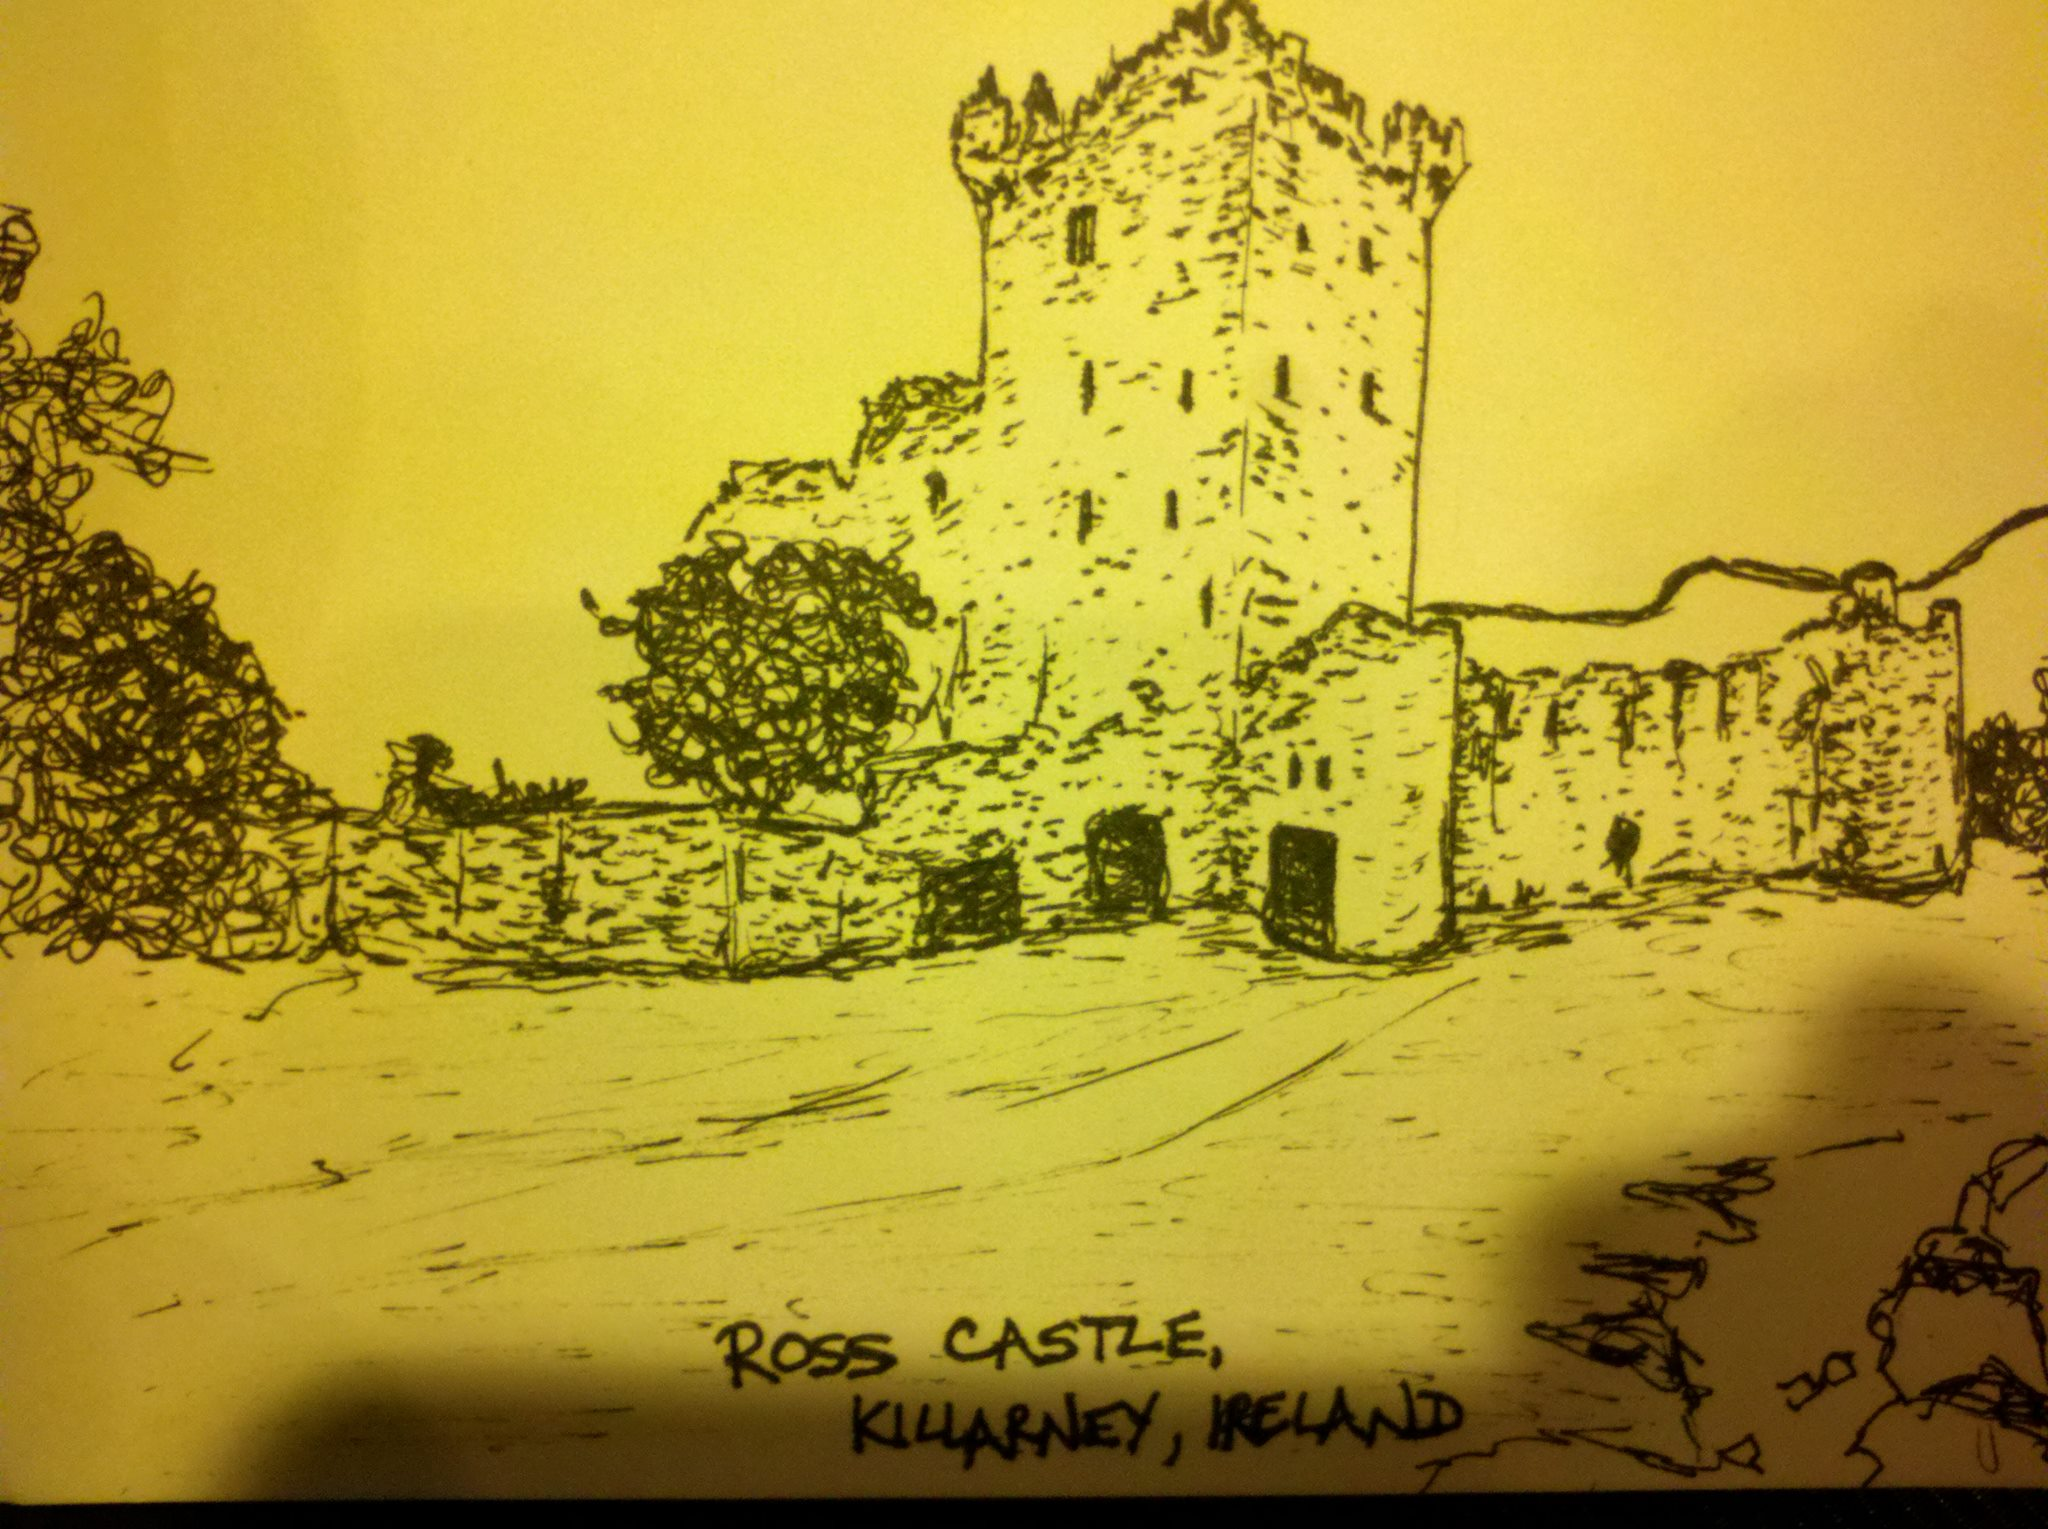 Ross Castle pen and ink sketch,drawings of irish castles